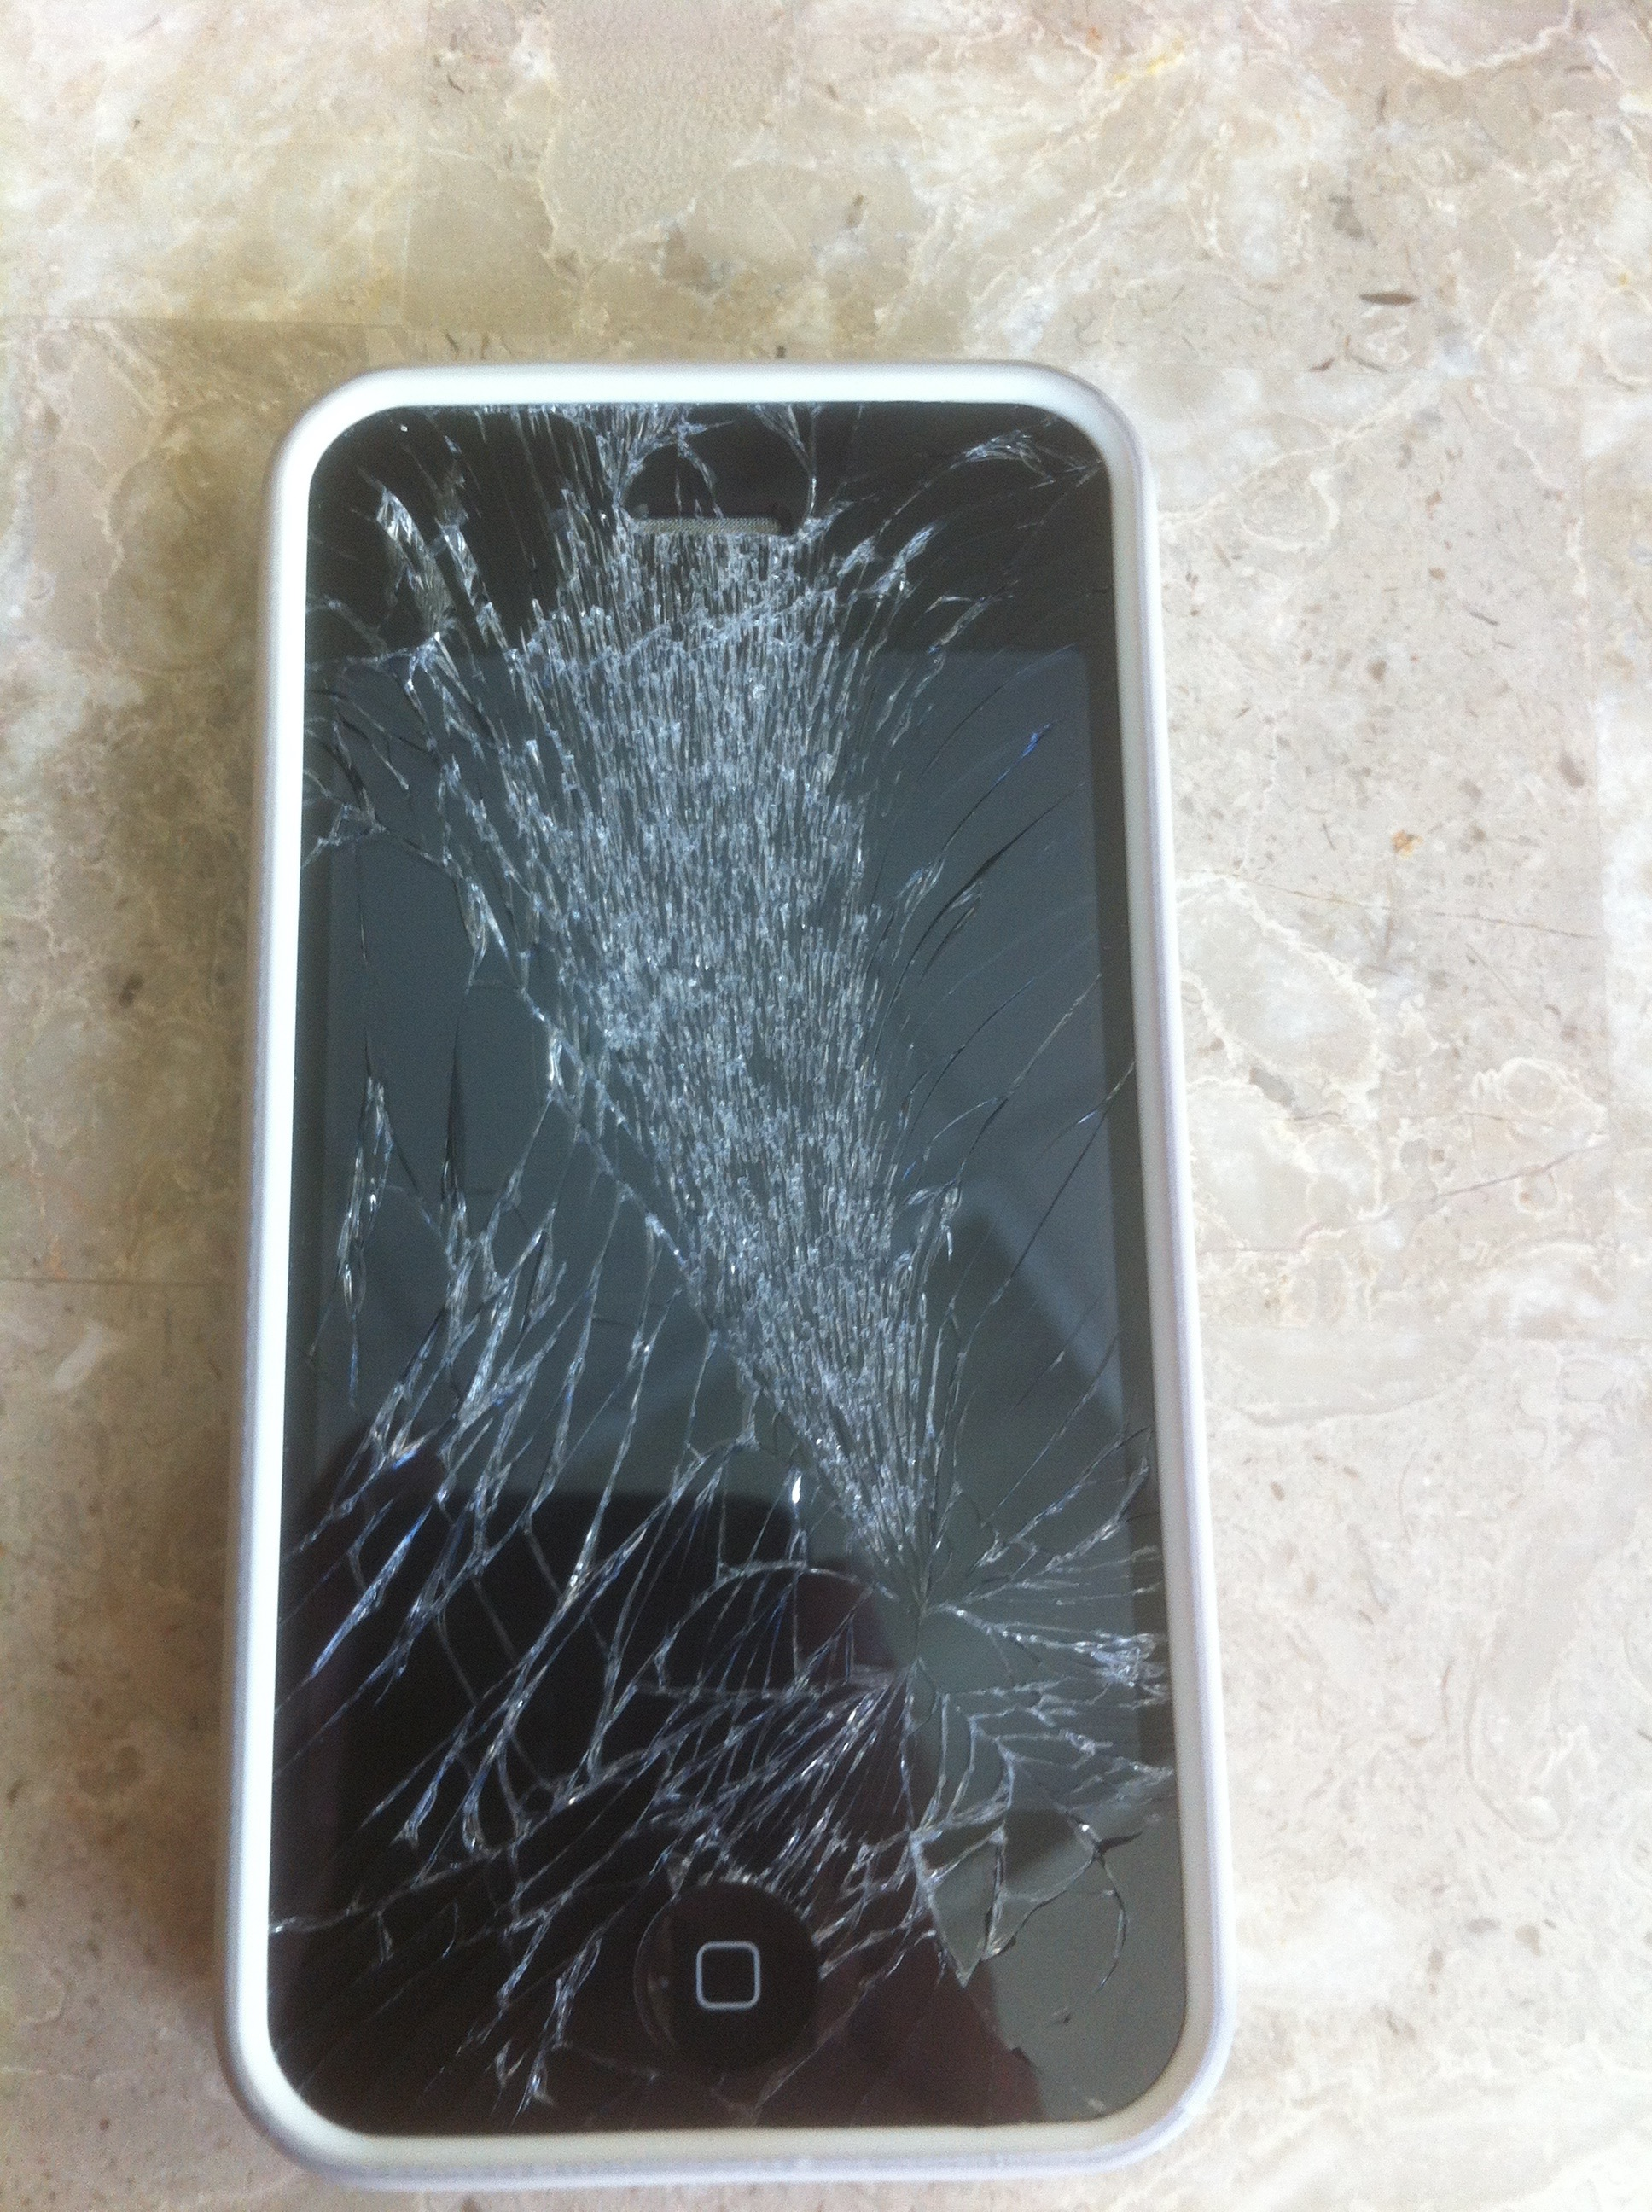 Uggghhh! This is the third time I cracked my iPhone 5 screen